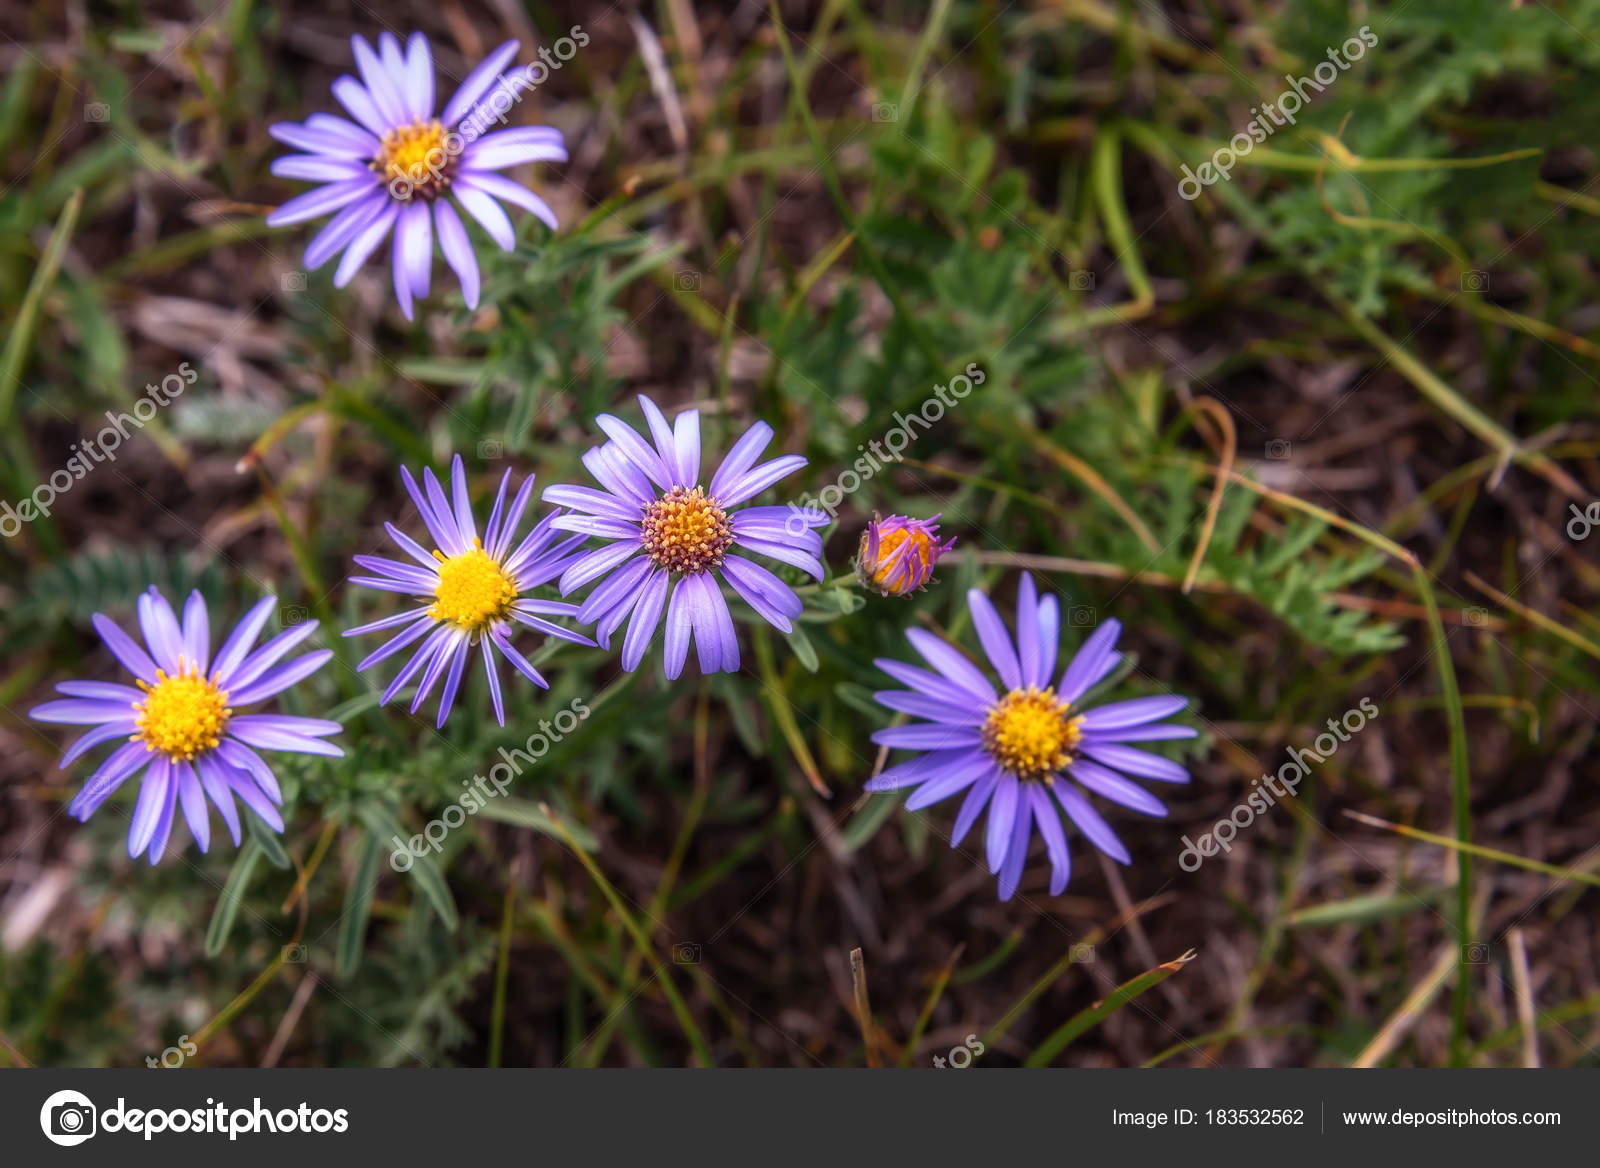 Lilac daisy flowers meadow background stock photo irisha 183532562 beautiful floral background with delicate lilac flowers daisies growing on the meadow in the mountains photo by irisha izmirmasajfo